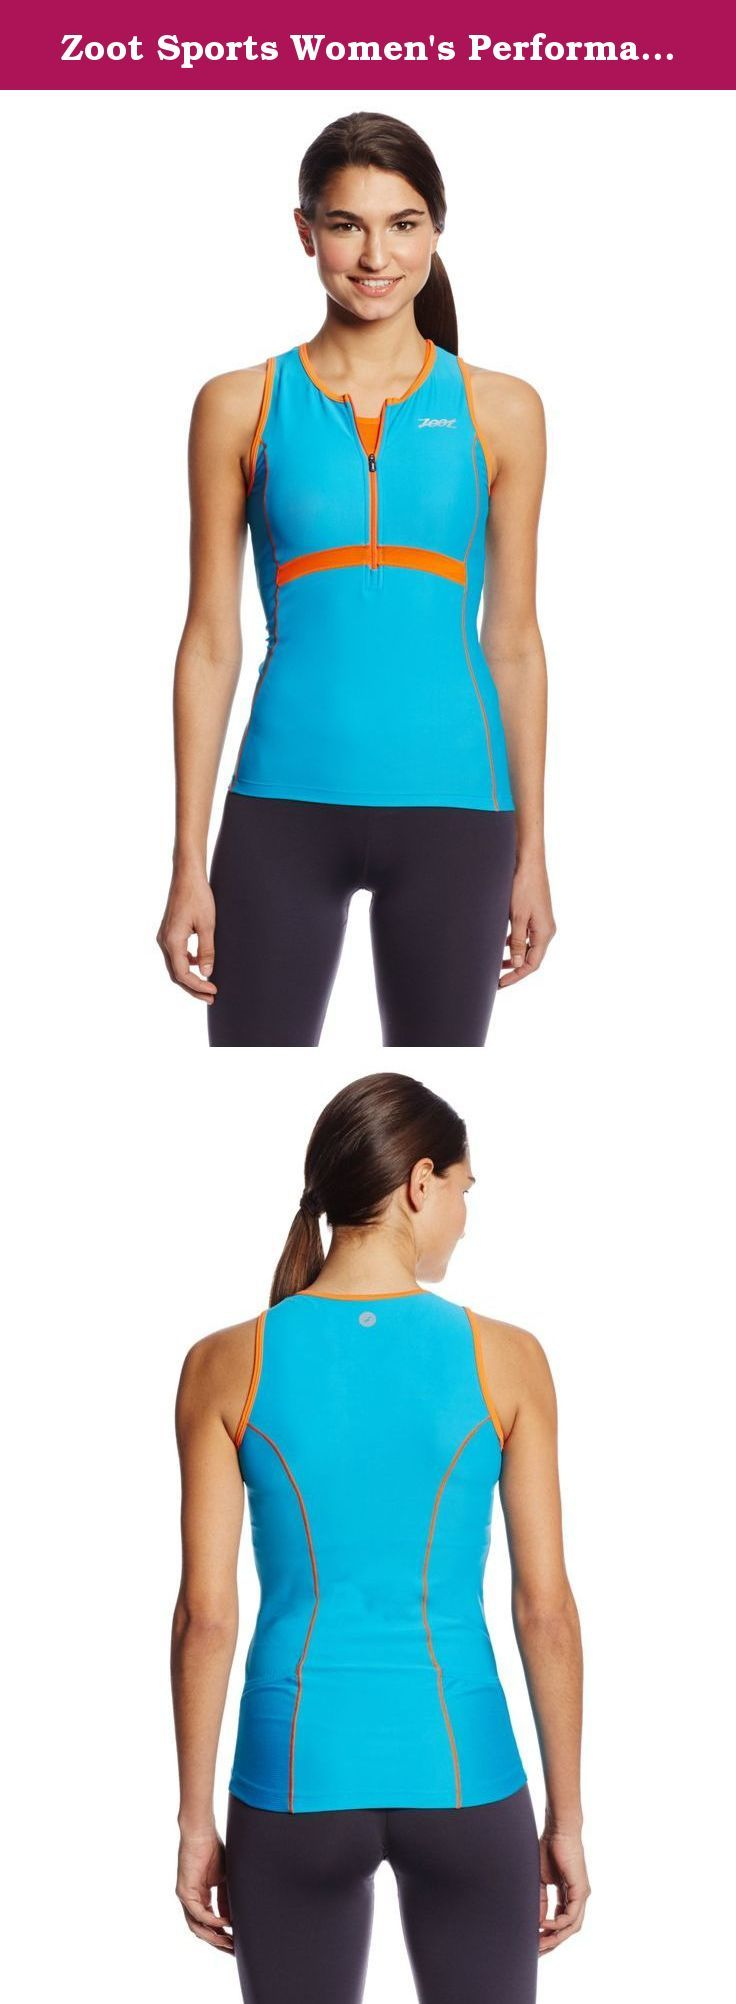 Zoot Sports Women's Performance Tri Tank,Splash/Flame,Medium. By design races are long and hard. And, by design, Zoot's triathlon apparel keeps you supported through all of it.